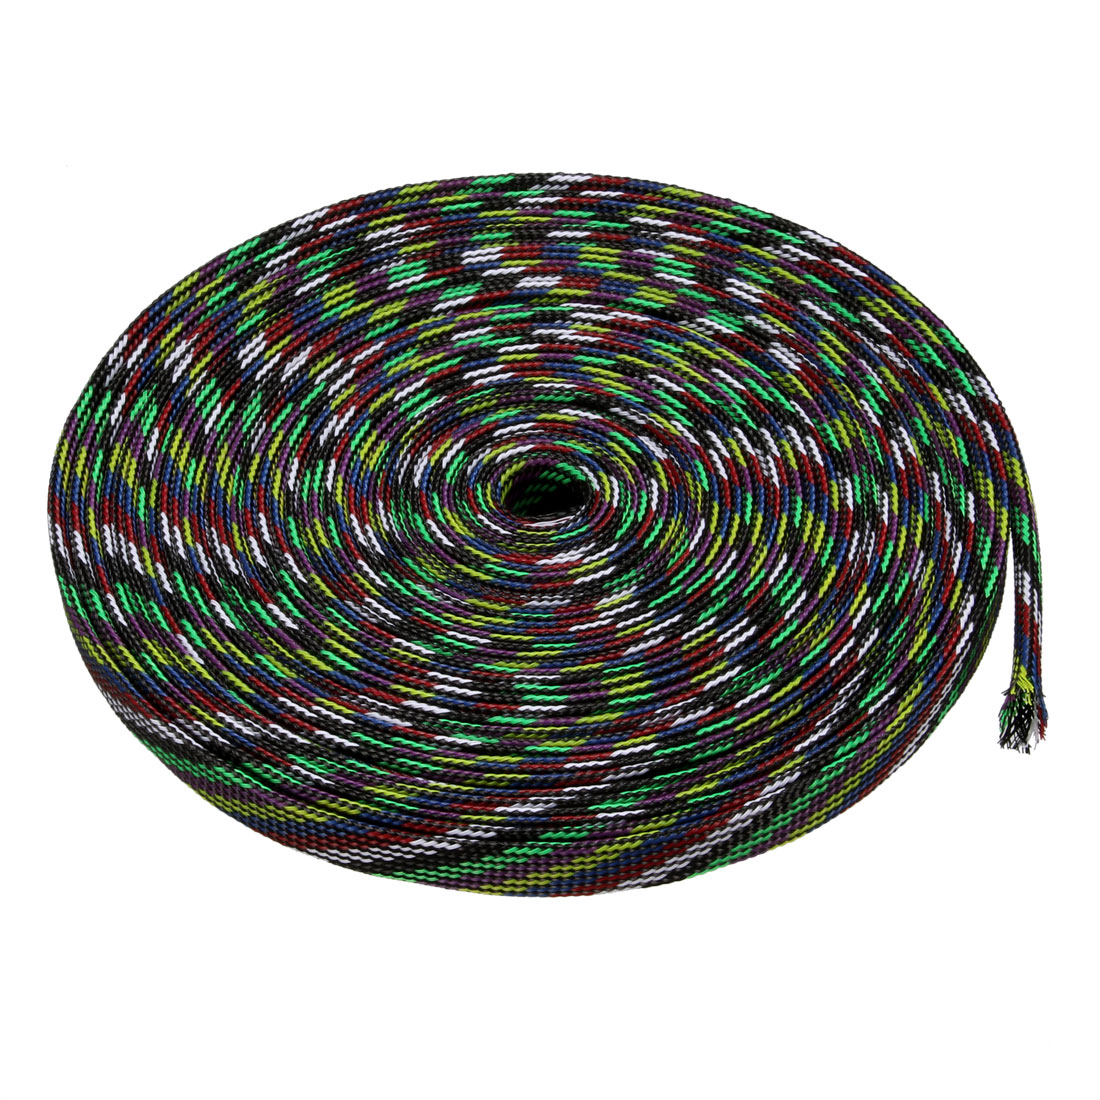 10mm PET Cable Wire Wrap Expandable Braided Sleeving Multicolor 10M Length